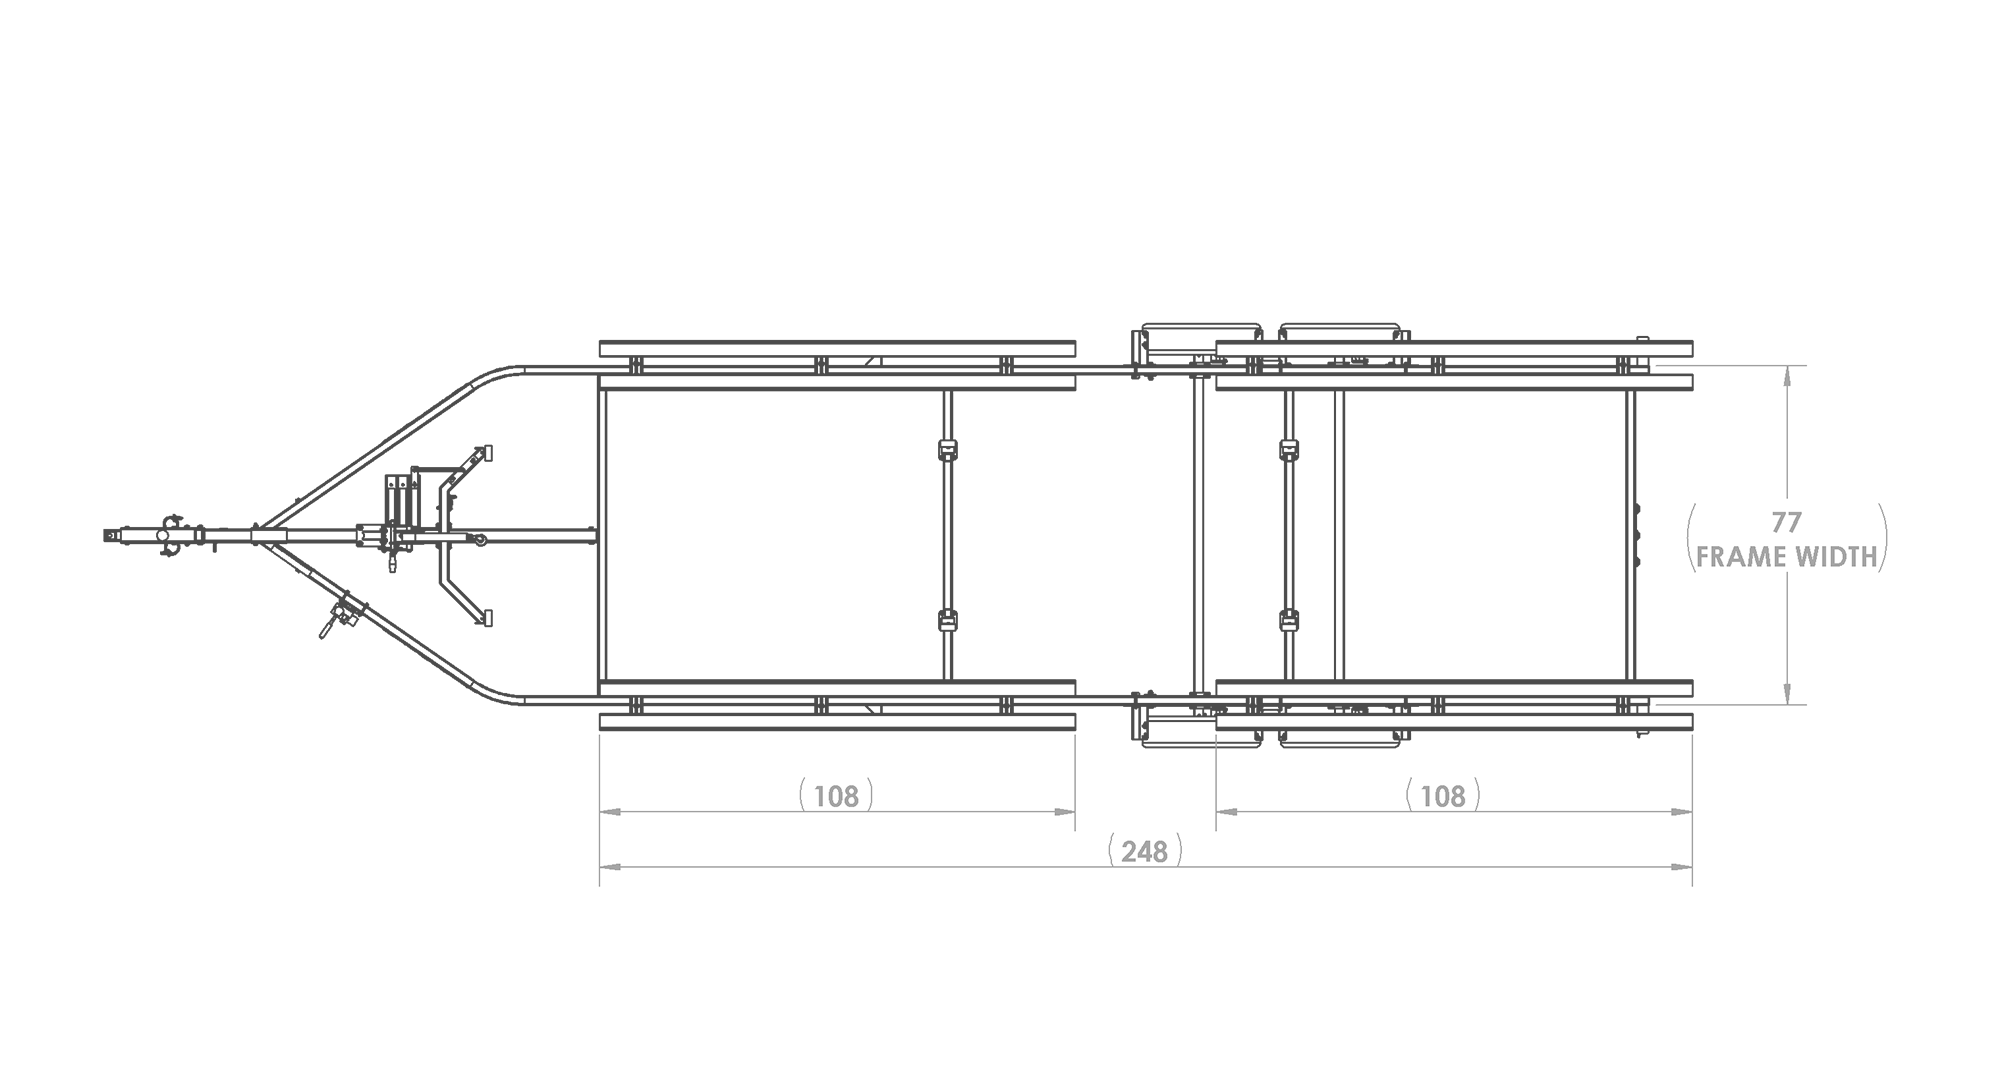 Karavan Trailer's Tandem Axel Large Pontoon Trailer, model number KDPT-2225, Top View Measurements